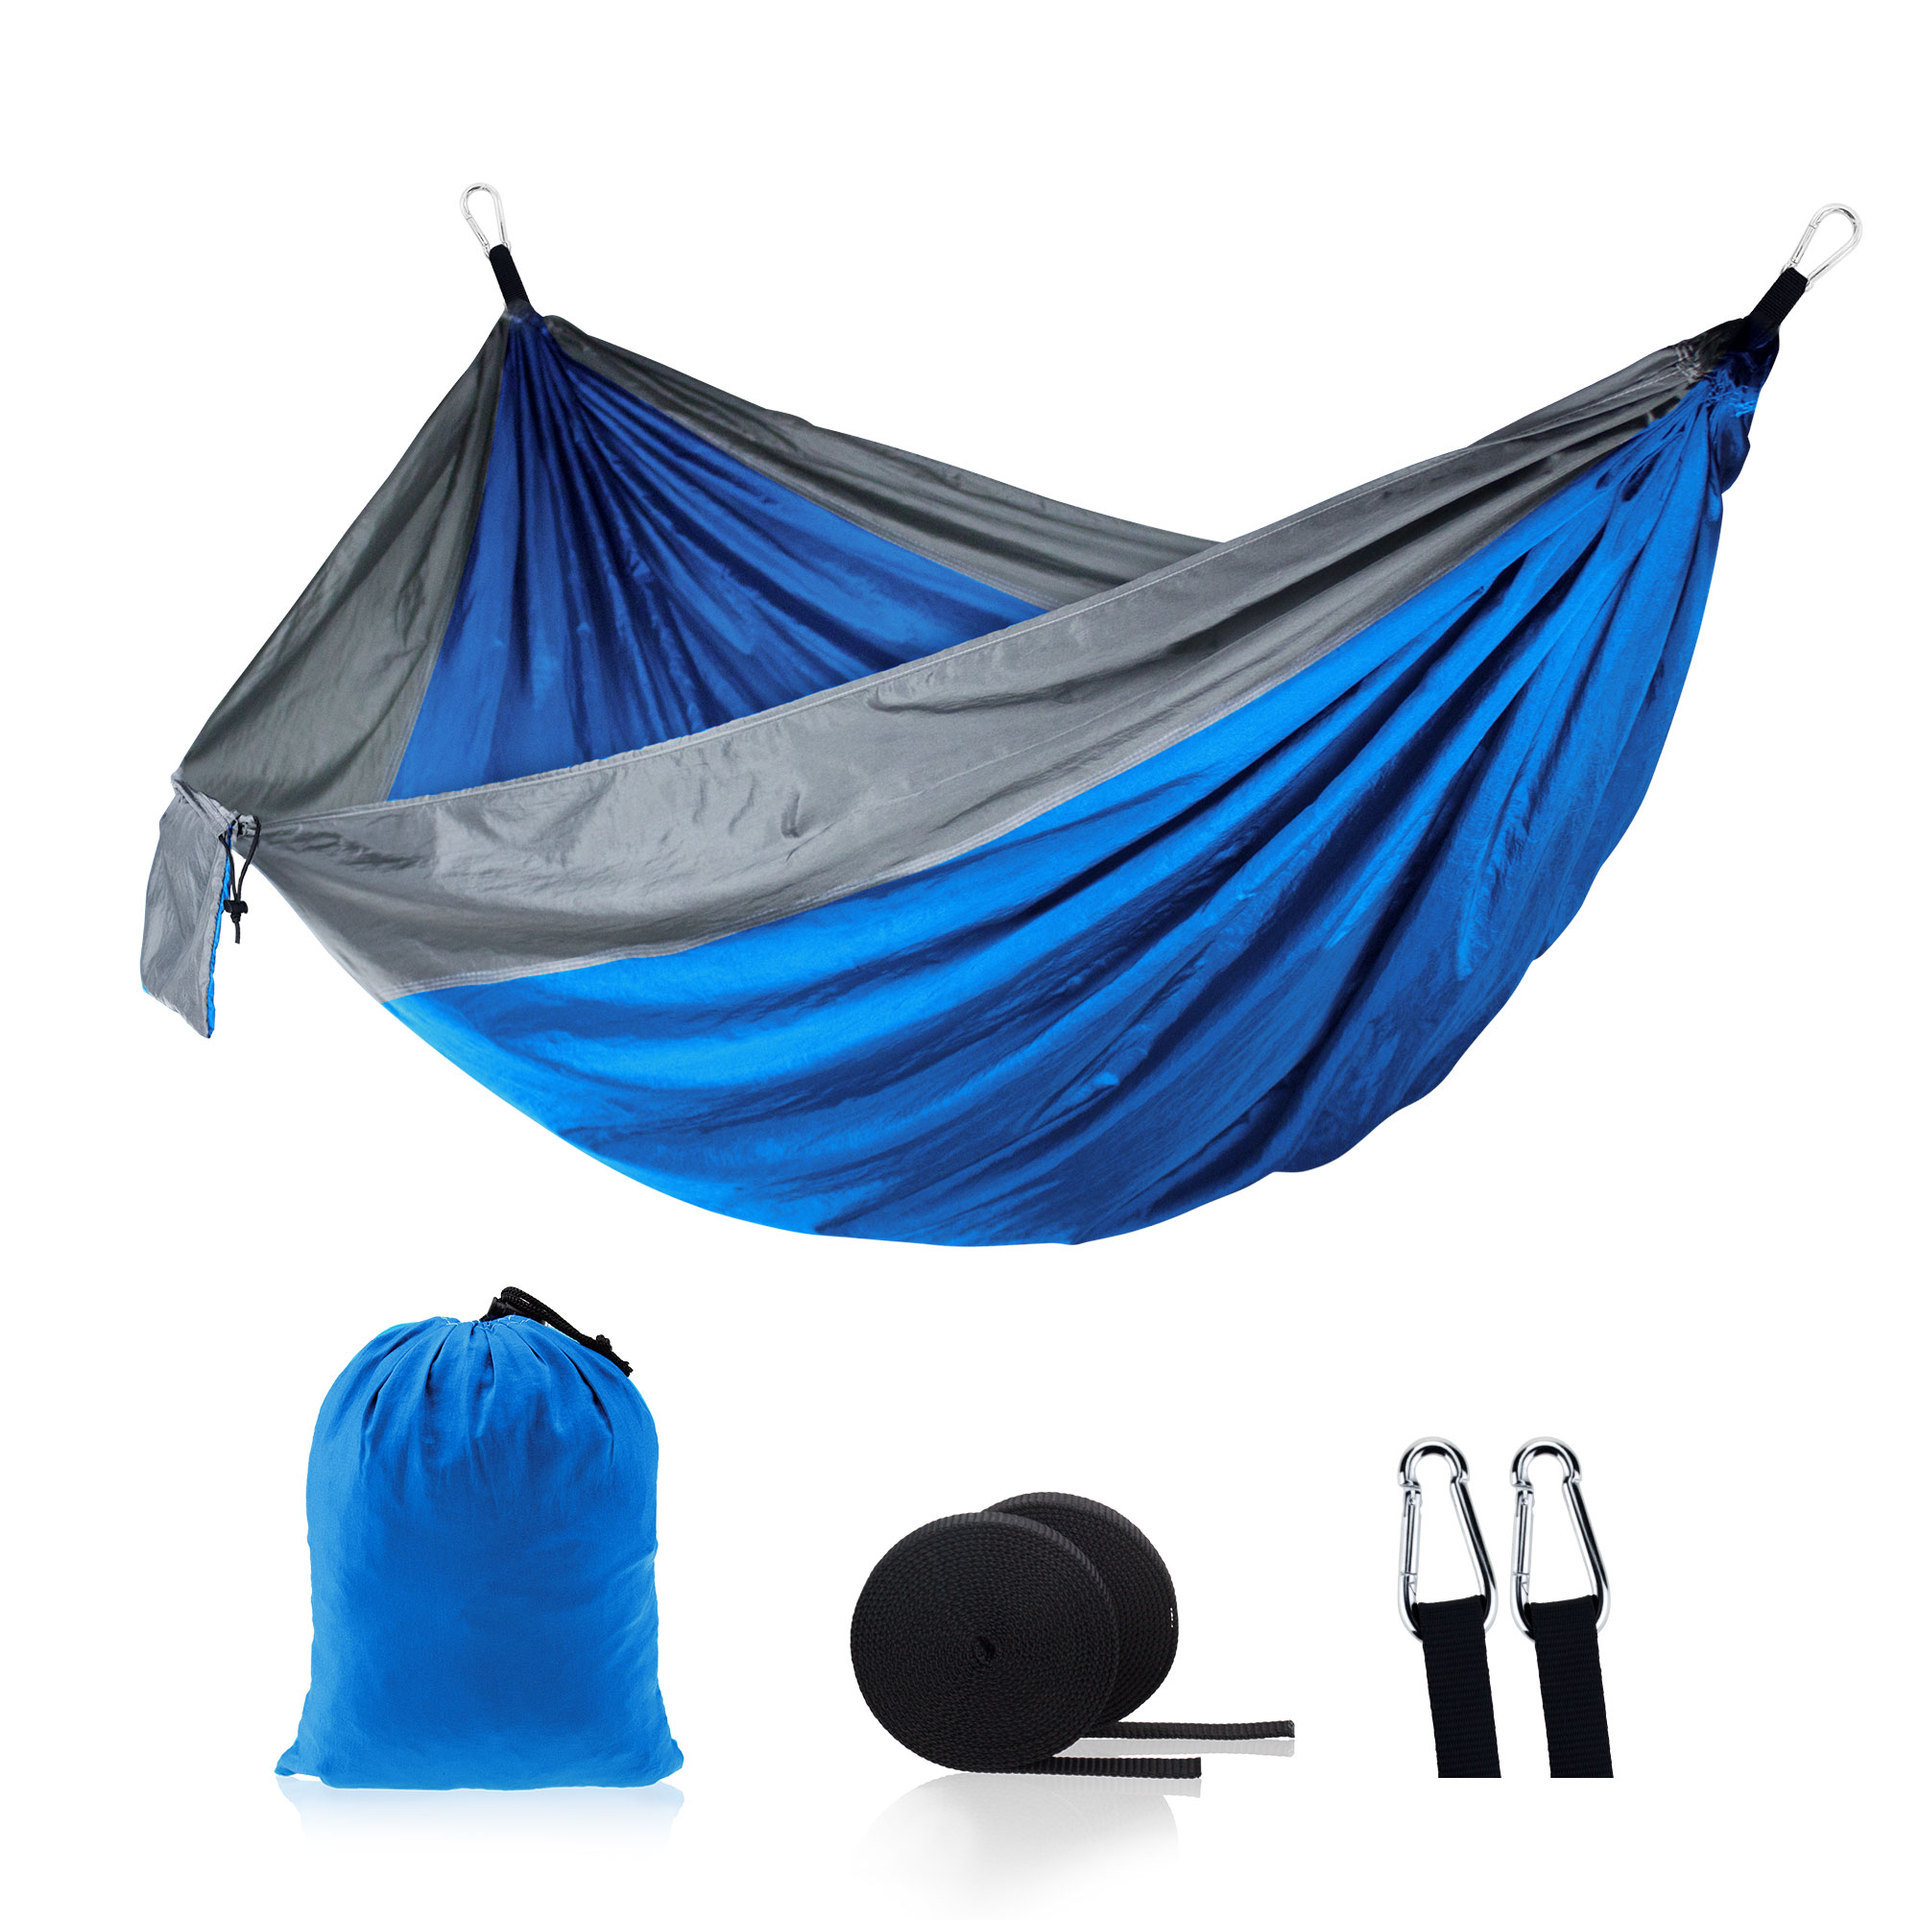 Hammock Garden Swing Double Sleeping 2 Person Adult Hanging Uspended Chair Nylon Camping Hammock Tent Outdoor Patio Furniture